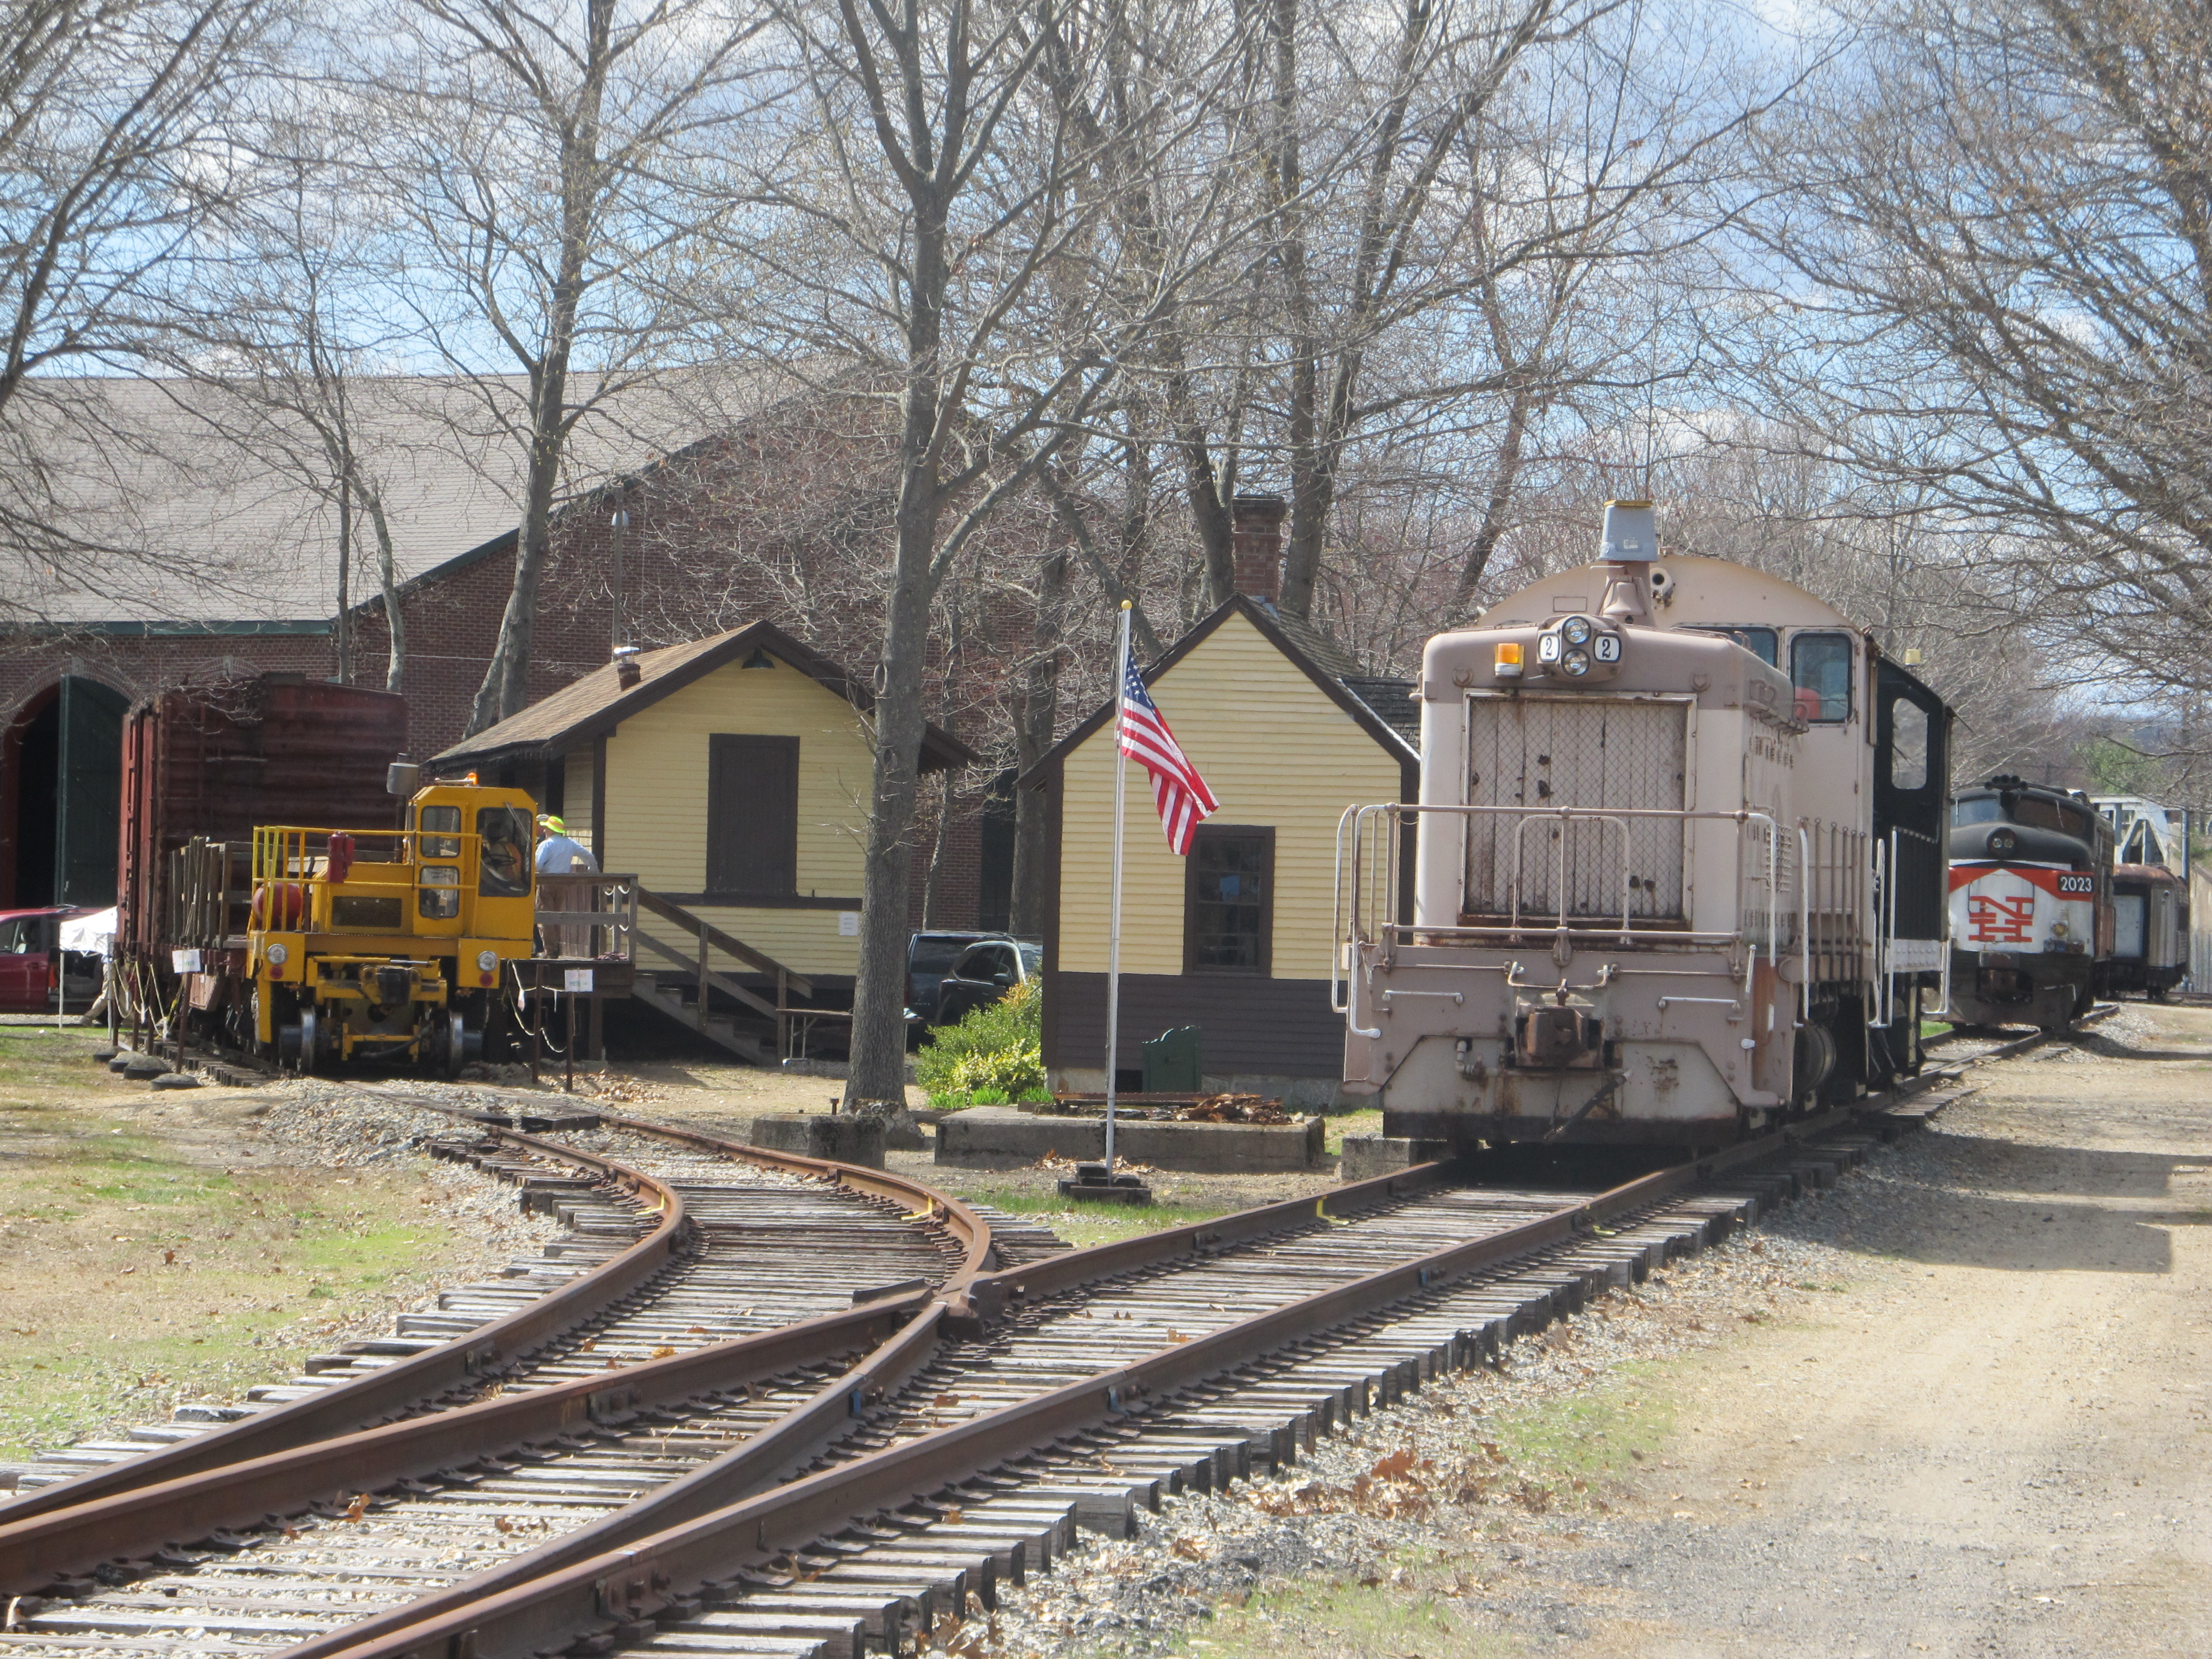 Connecticut's rail history offers summer day-trip fun